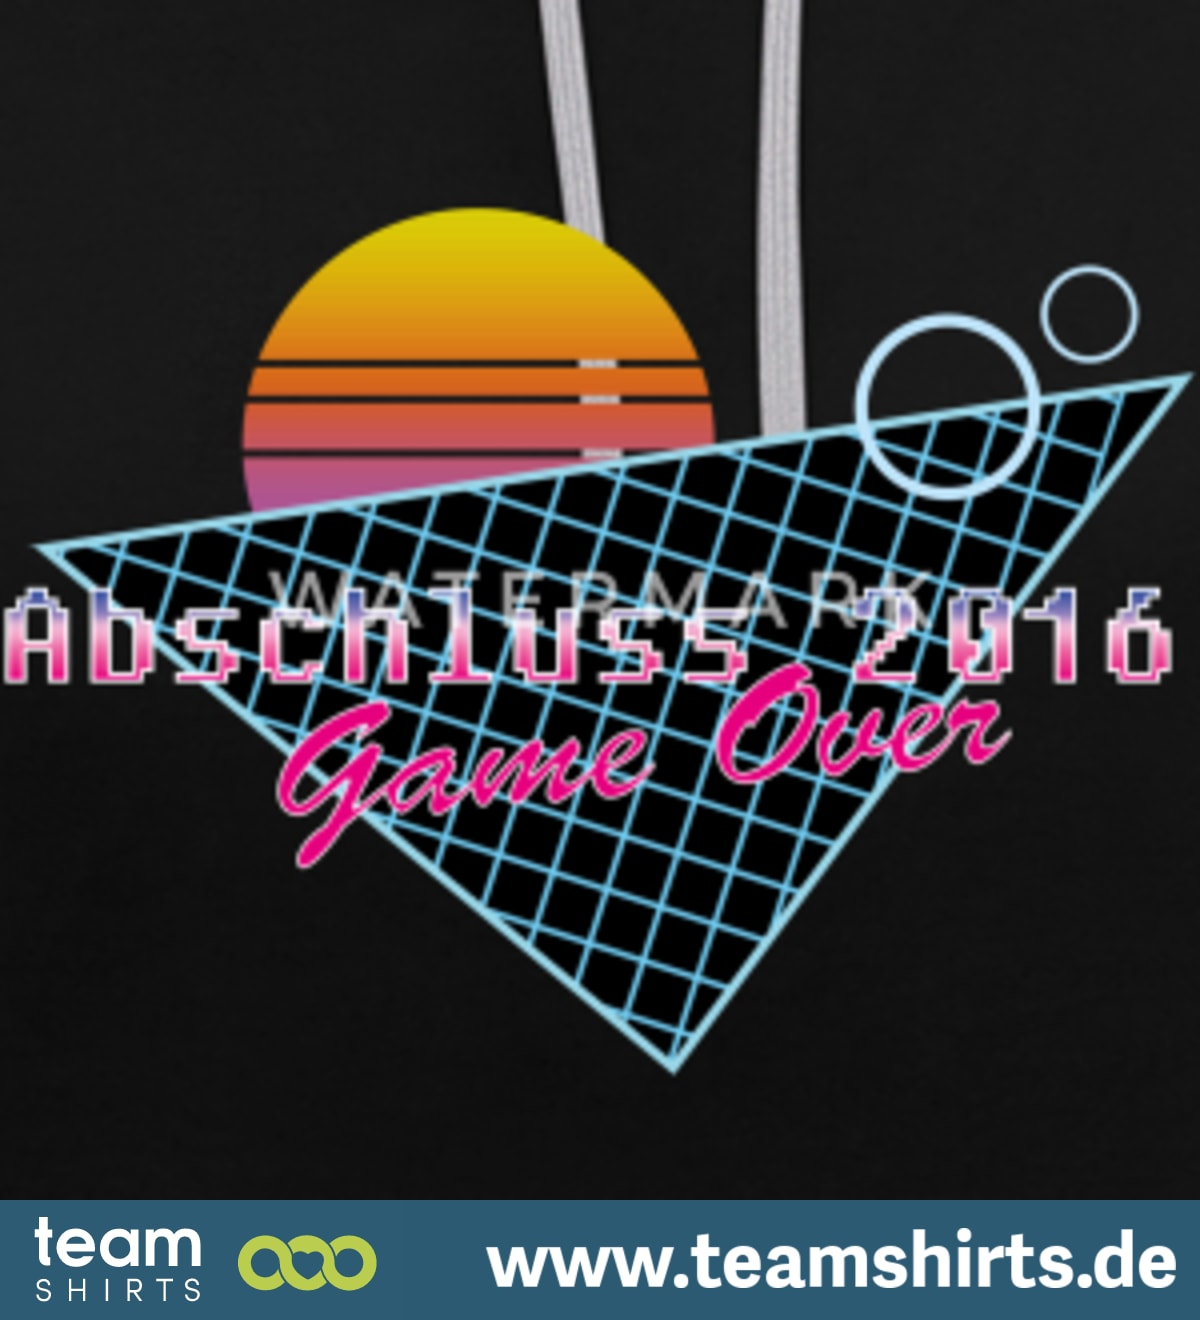 ABSCHLUSS 2016 GAME OVER